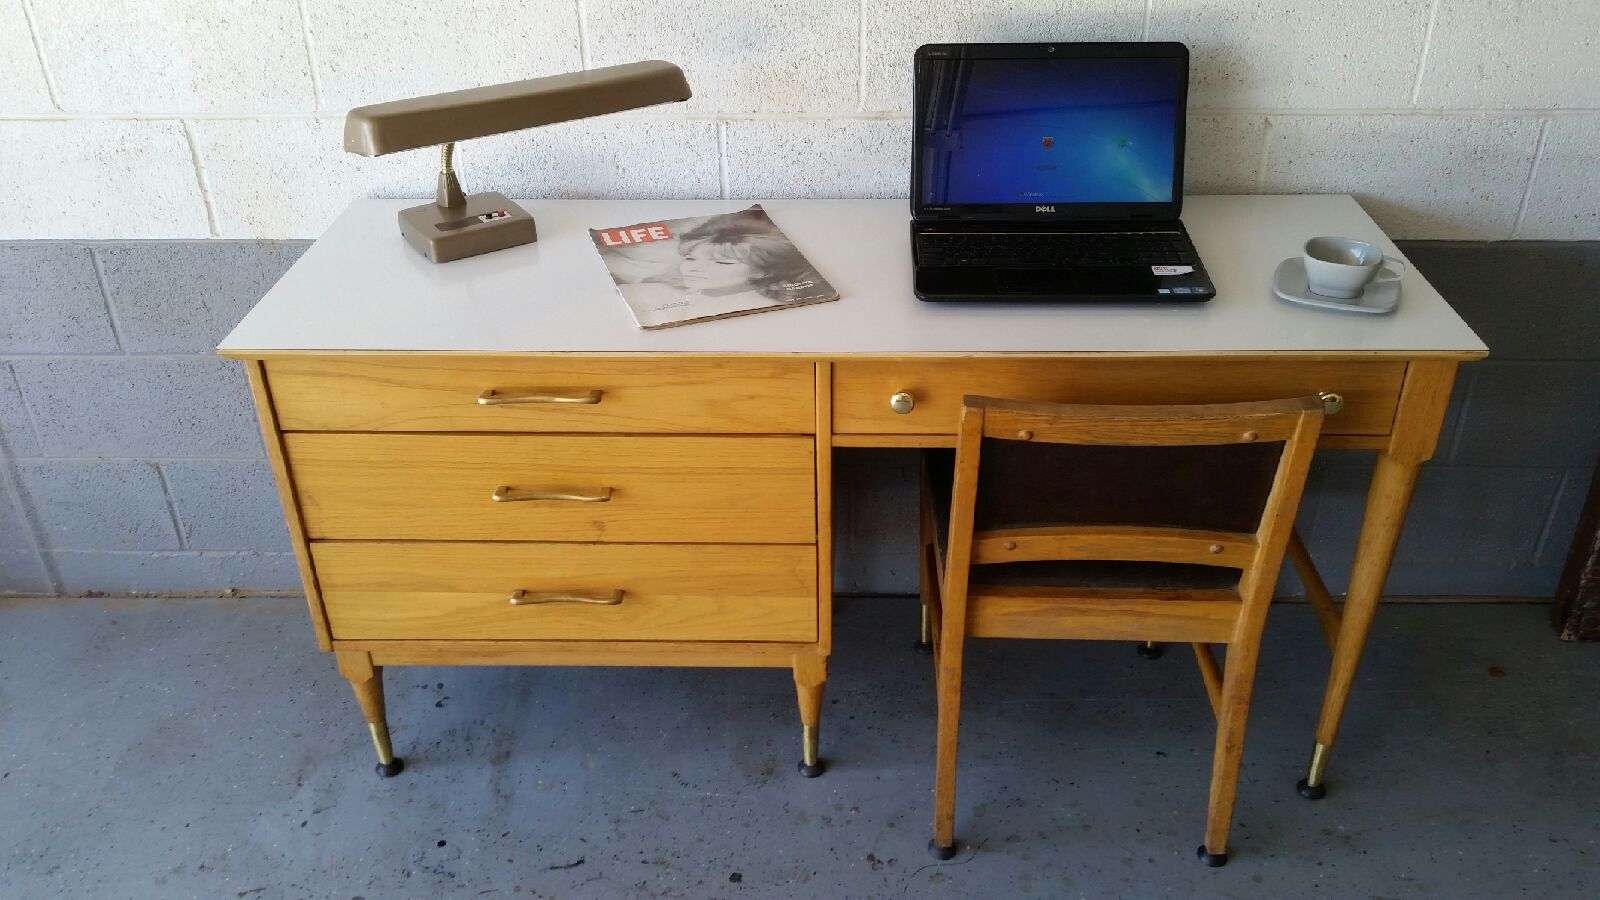 Attractive Desk With Original Chair Circa From Franciscan Furniture Of Albuquerque,  New Mexico. Available On Phoenix Craigslist.